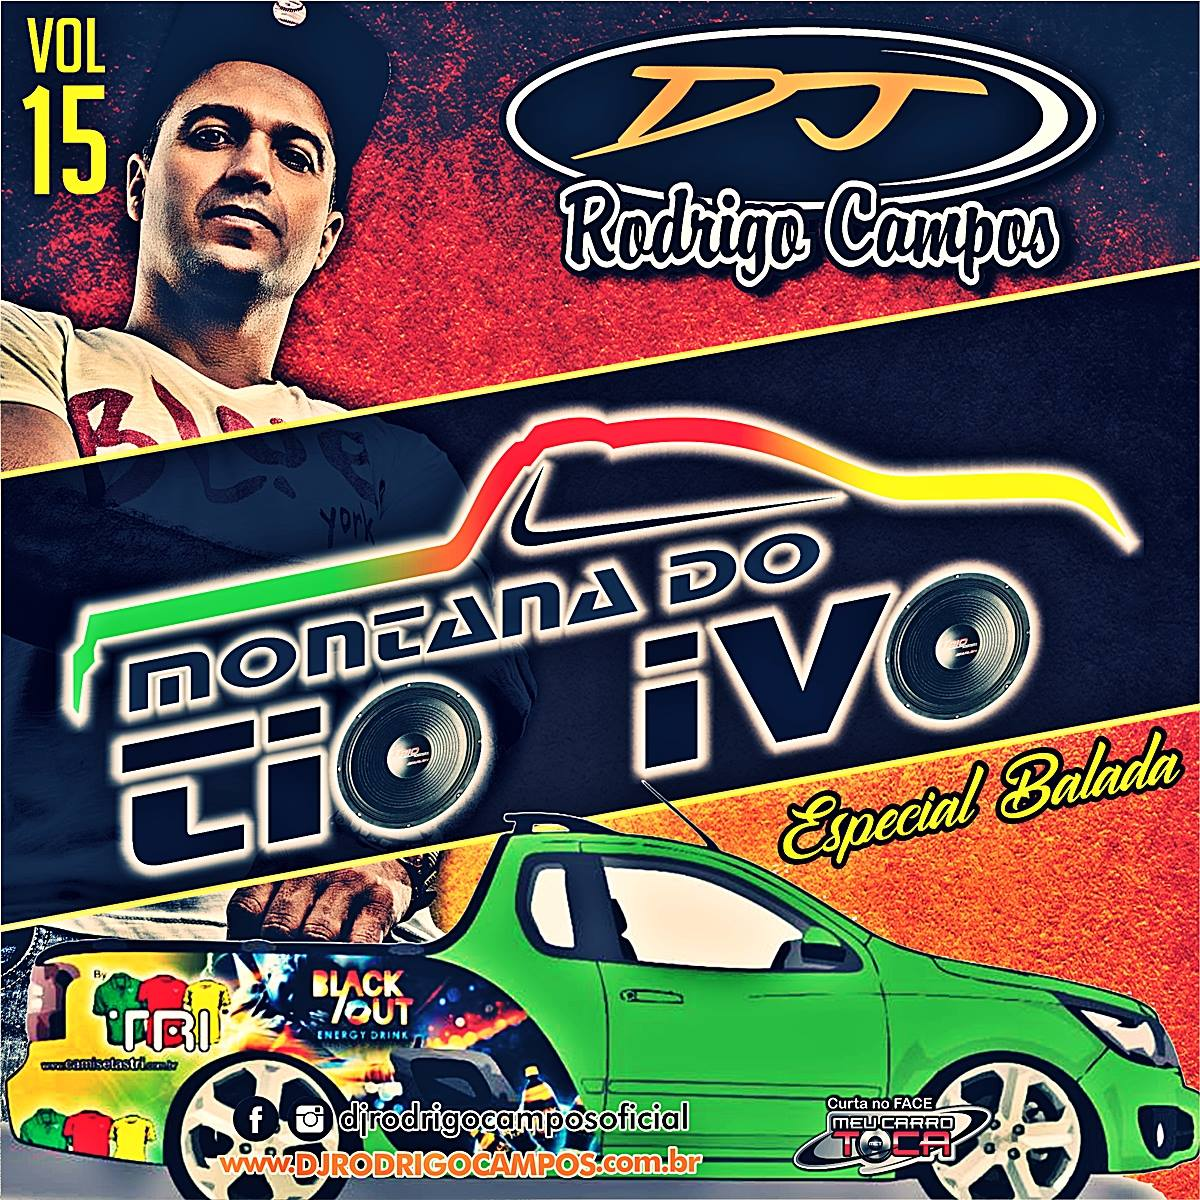 Montana do Tio Ivo Vol 15